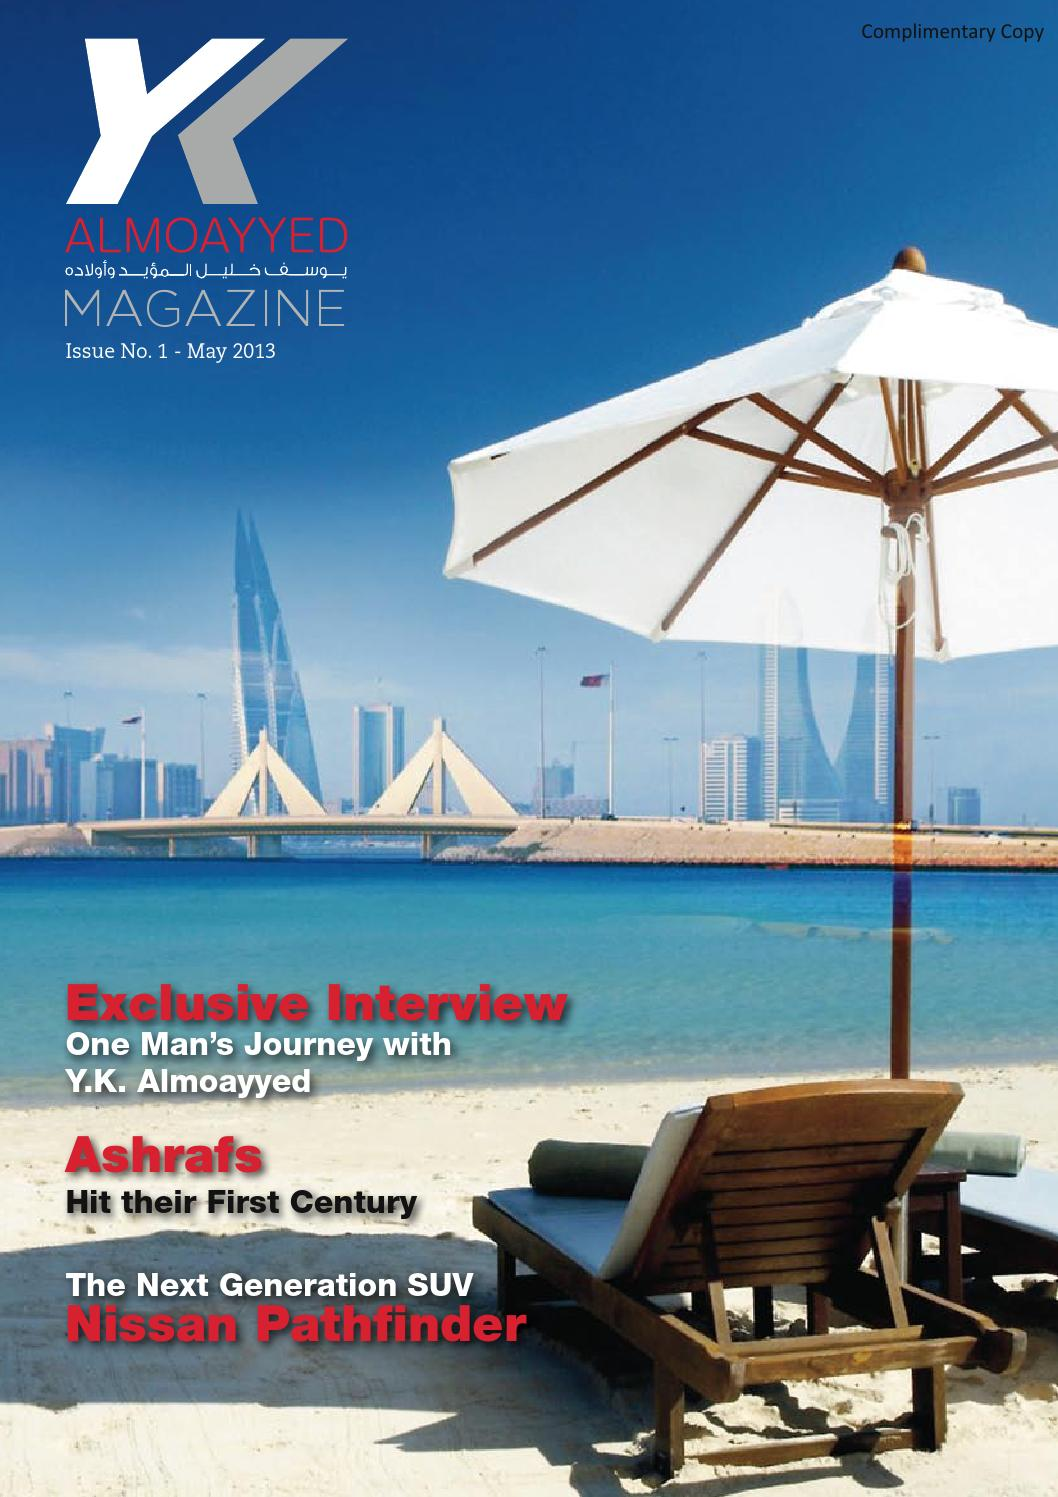 Bagno Design Bahrain Wll Yk Almoayyed Sons Magazine English Issue No 1 May 2013